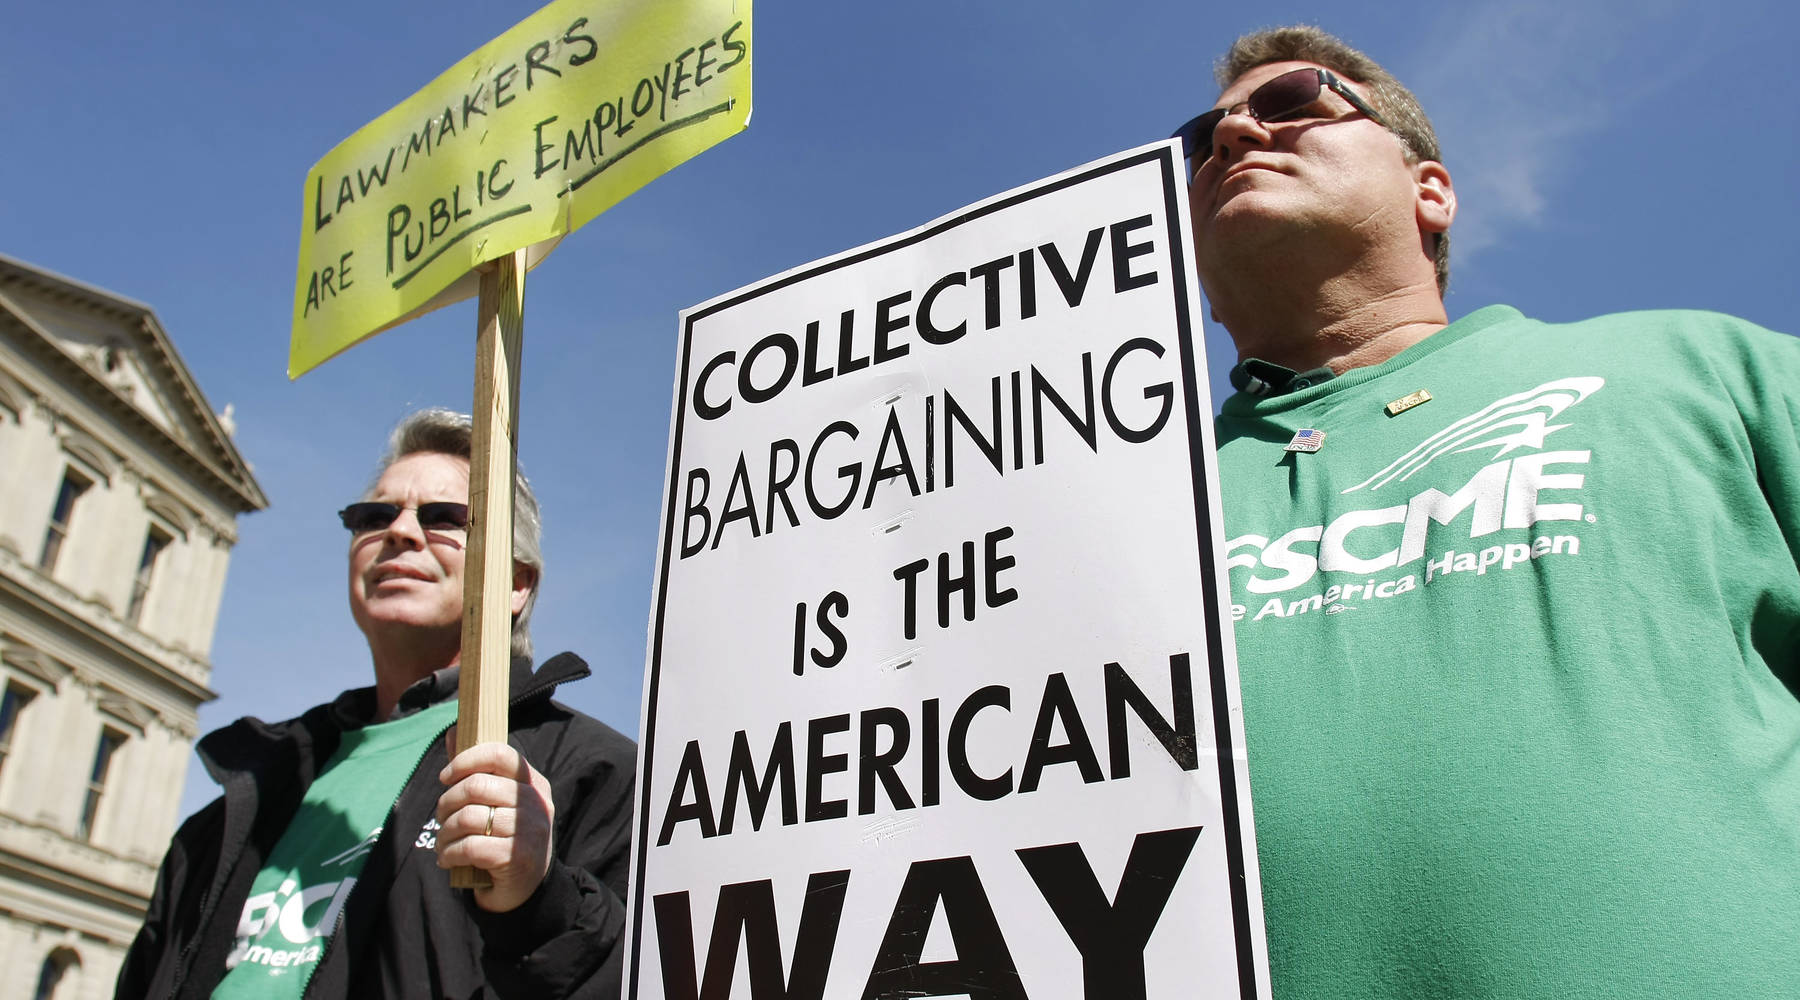 Why unions are so worried about right-to-work laws - Marketplace